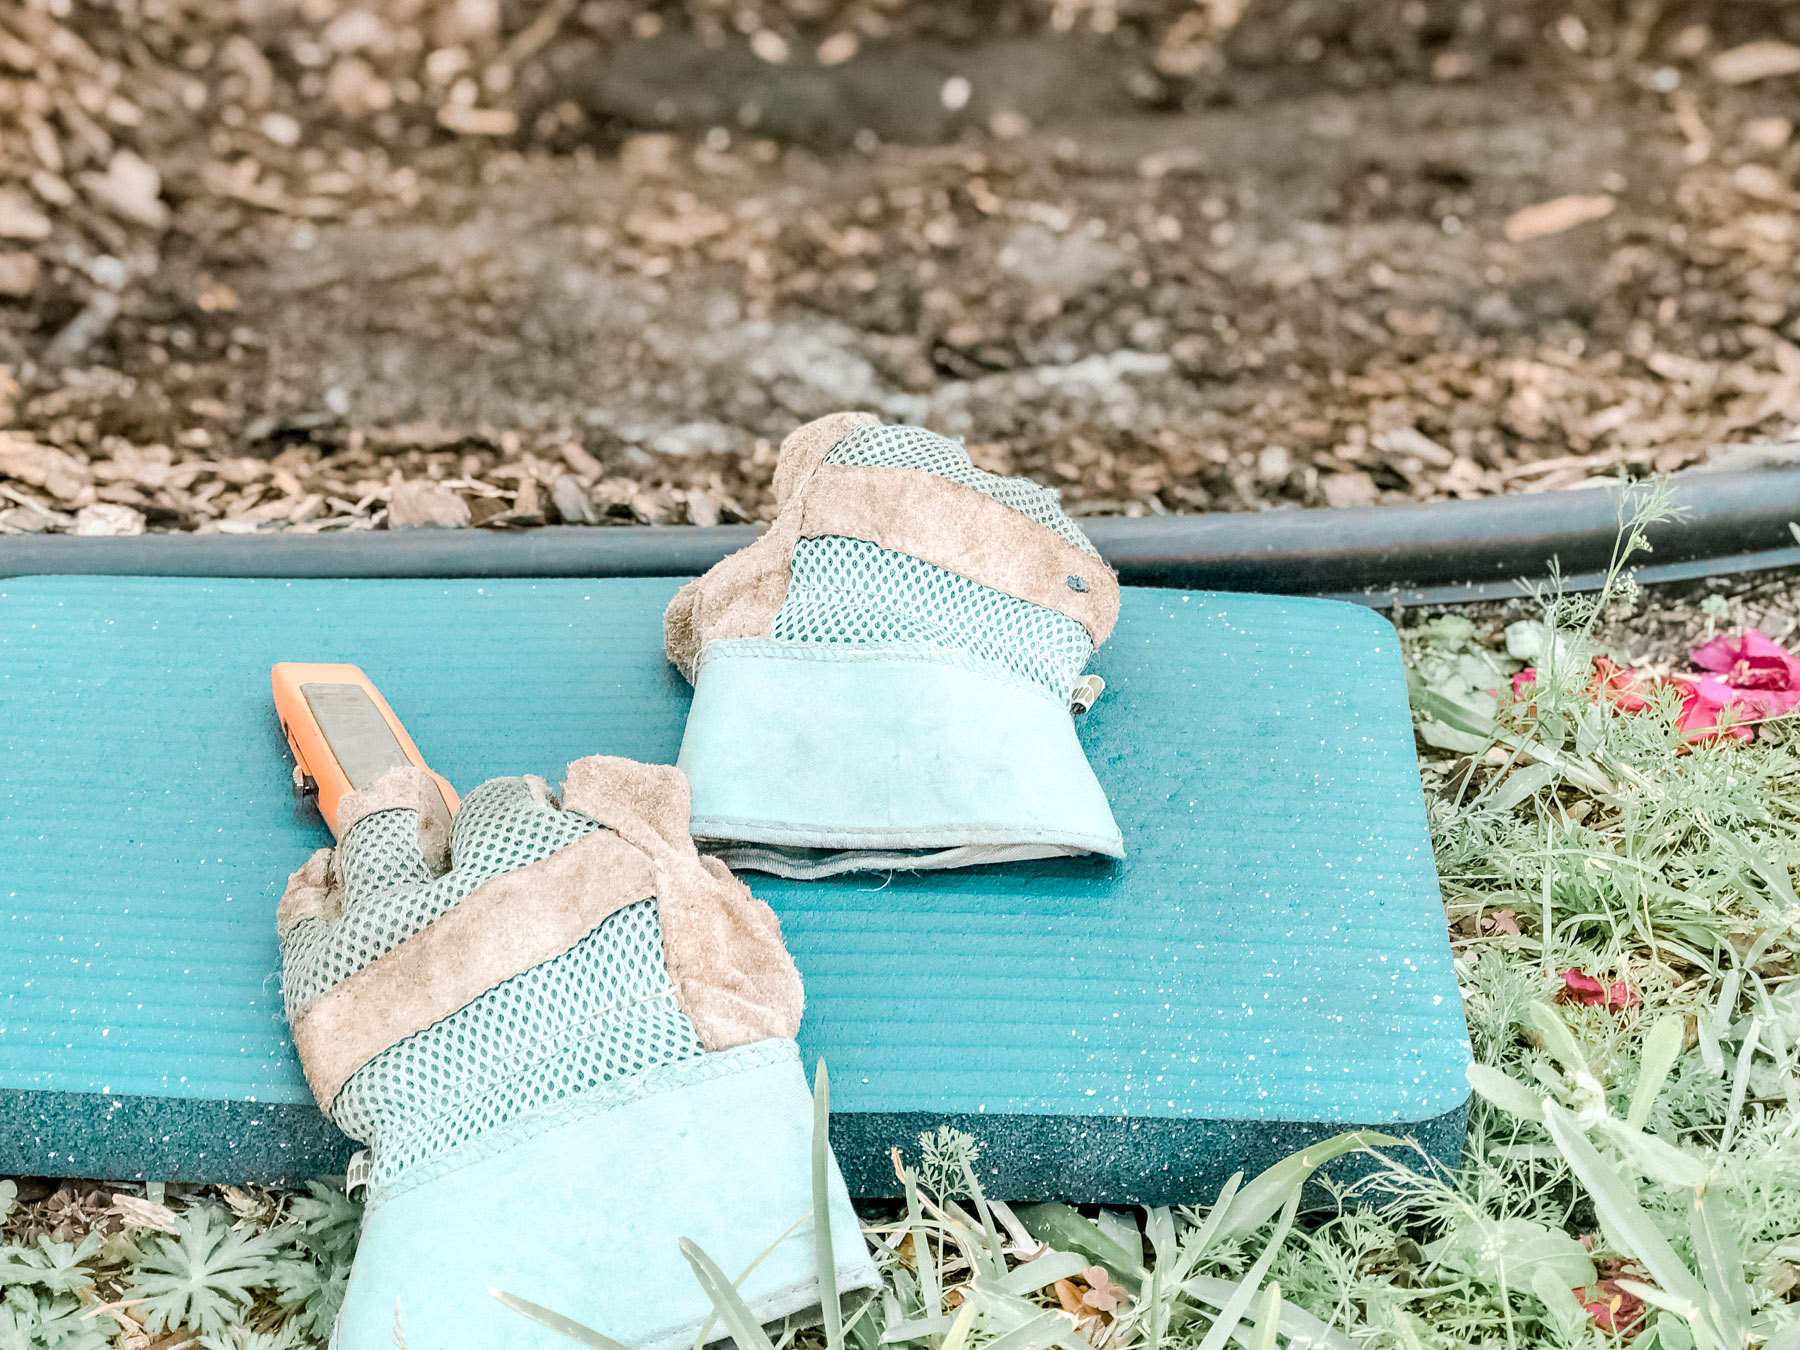 green gardening gloves and blue kneeling mat